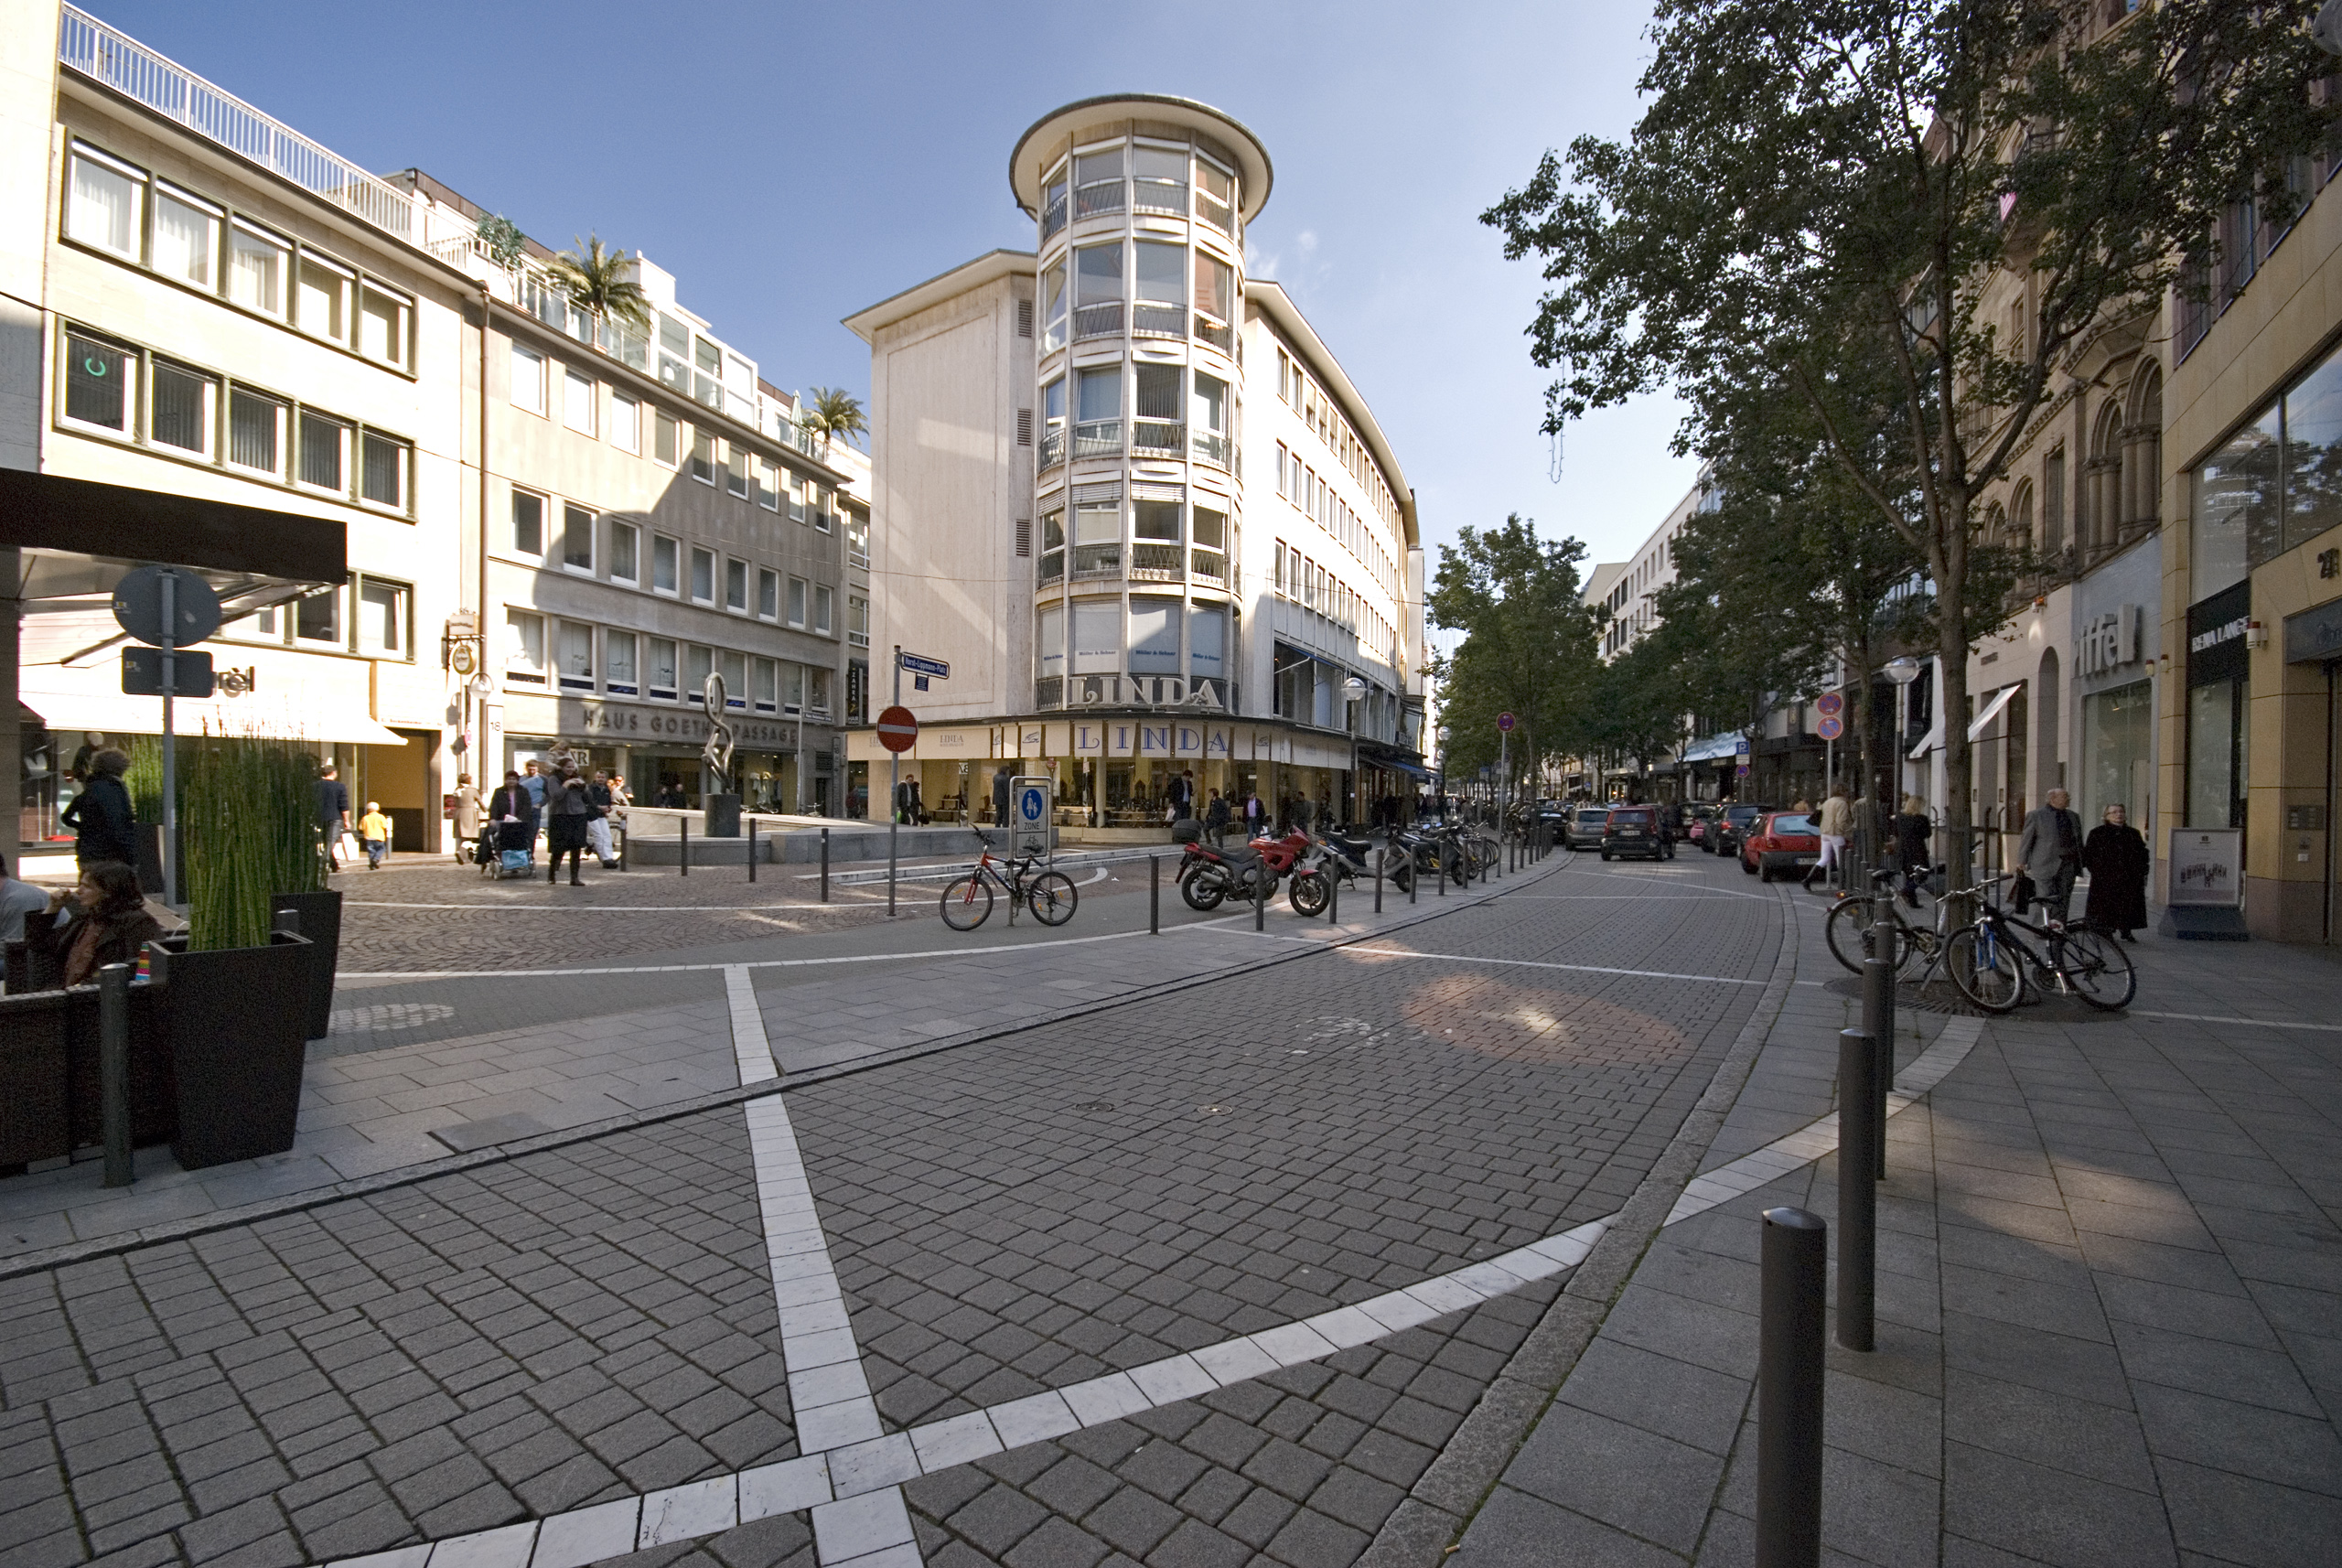 Goethestrasse-Best Independent Shopping